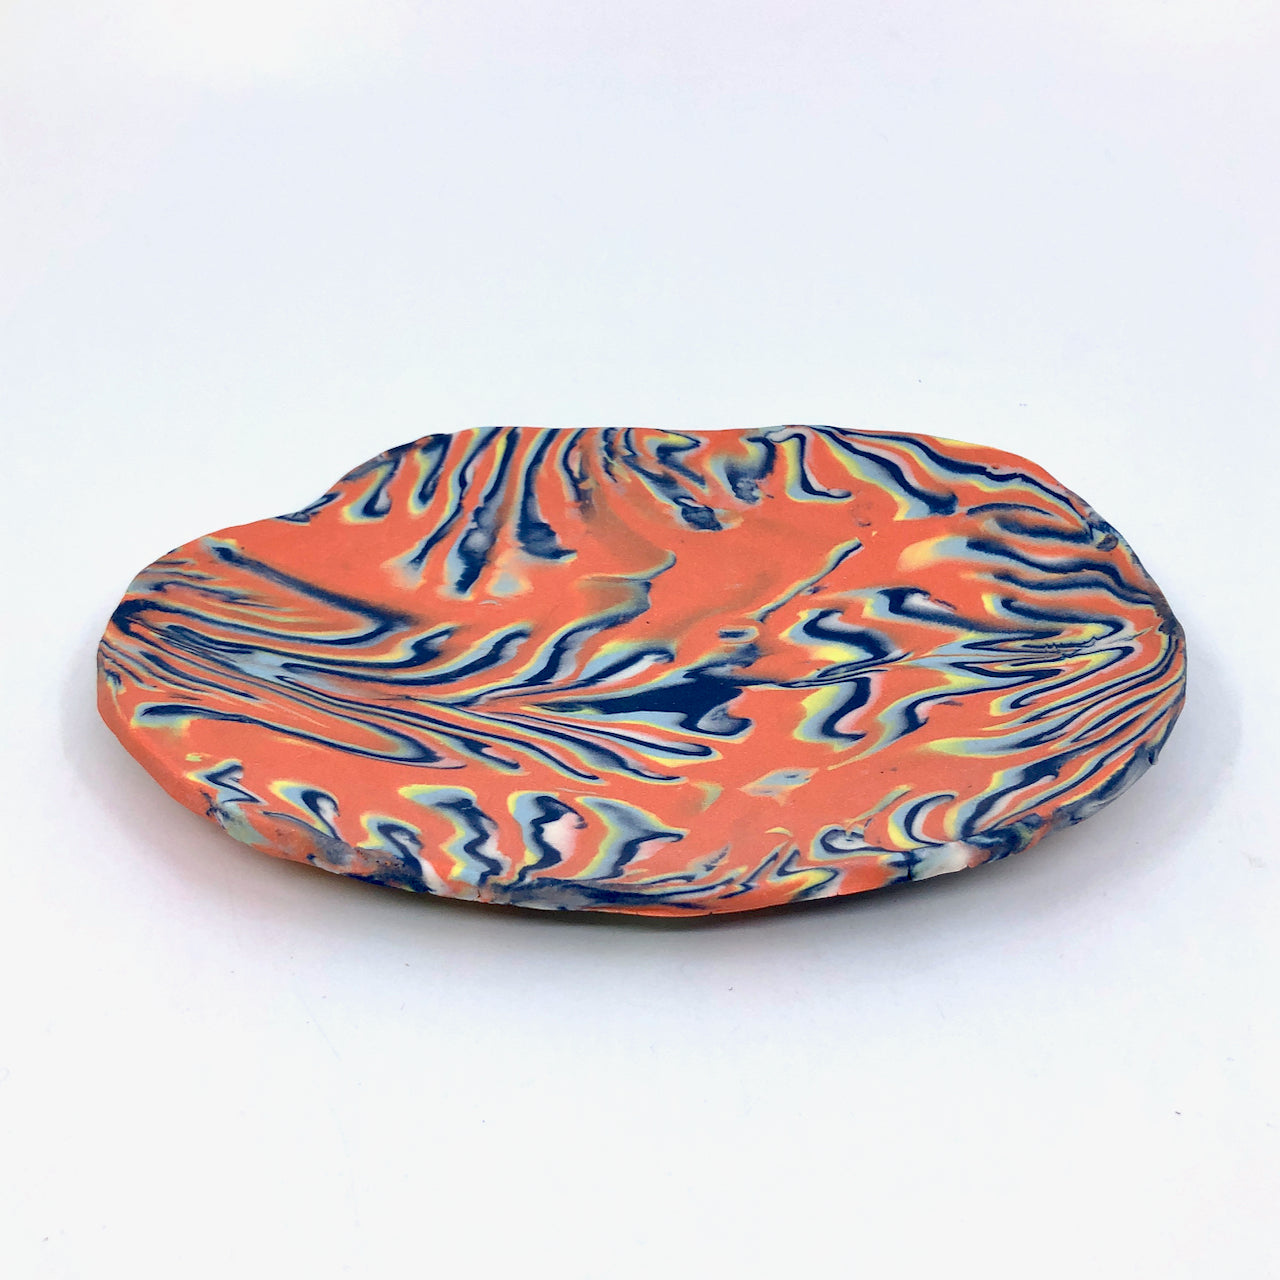 Coral & Royal Marbled Medium Display Platter